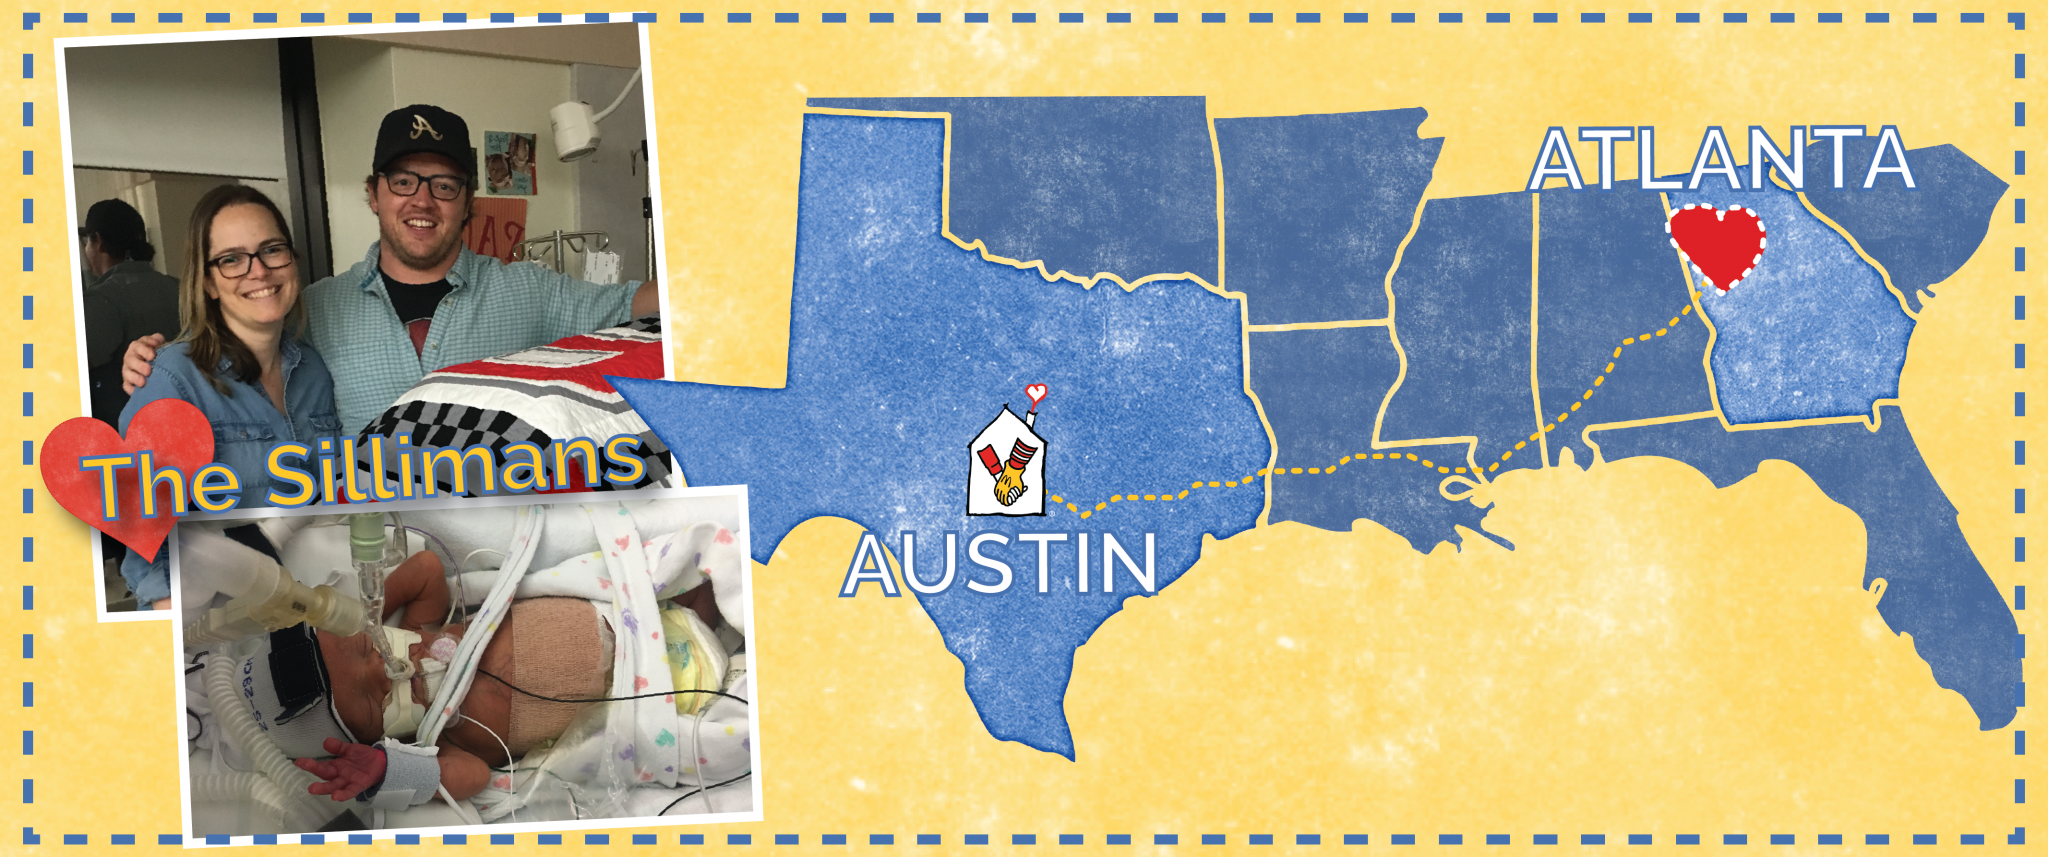 the Sillman family and their newborn son and a map displaying the RMHC CTX location and Atlanta, GA where the SIllmans are from